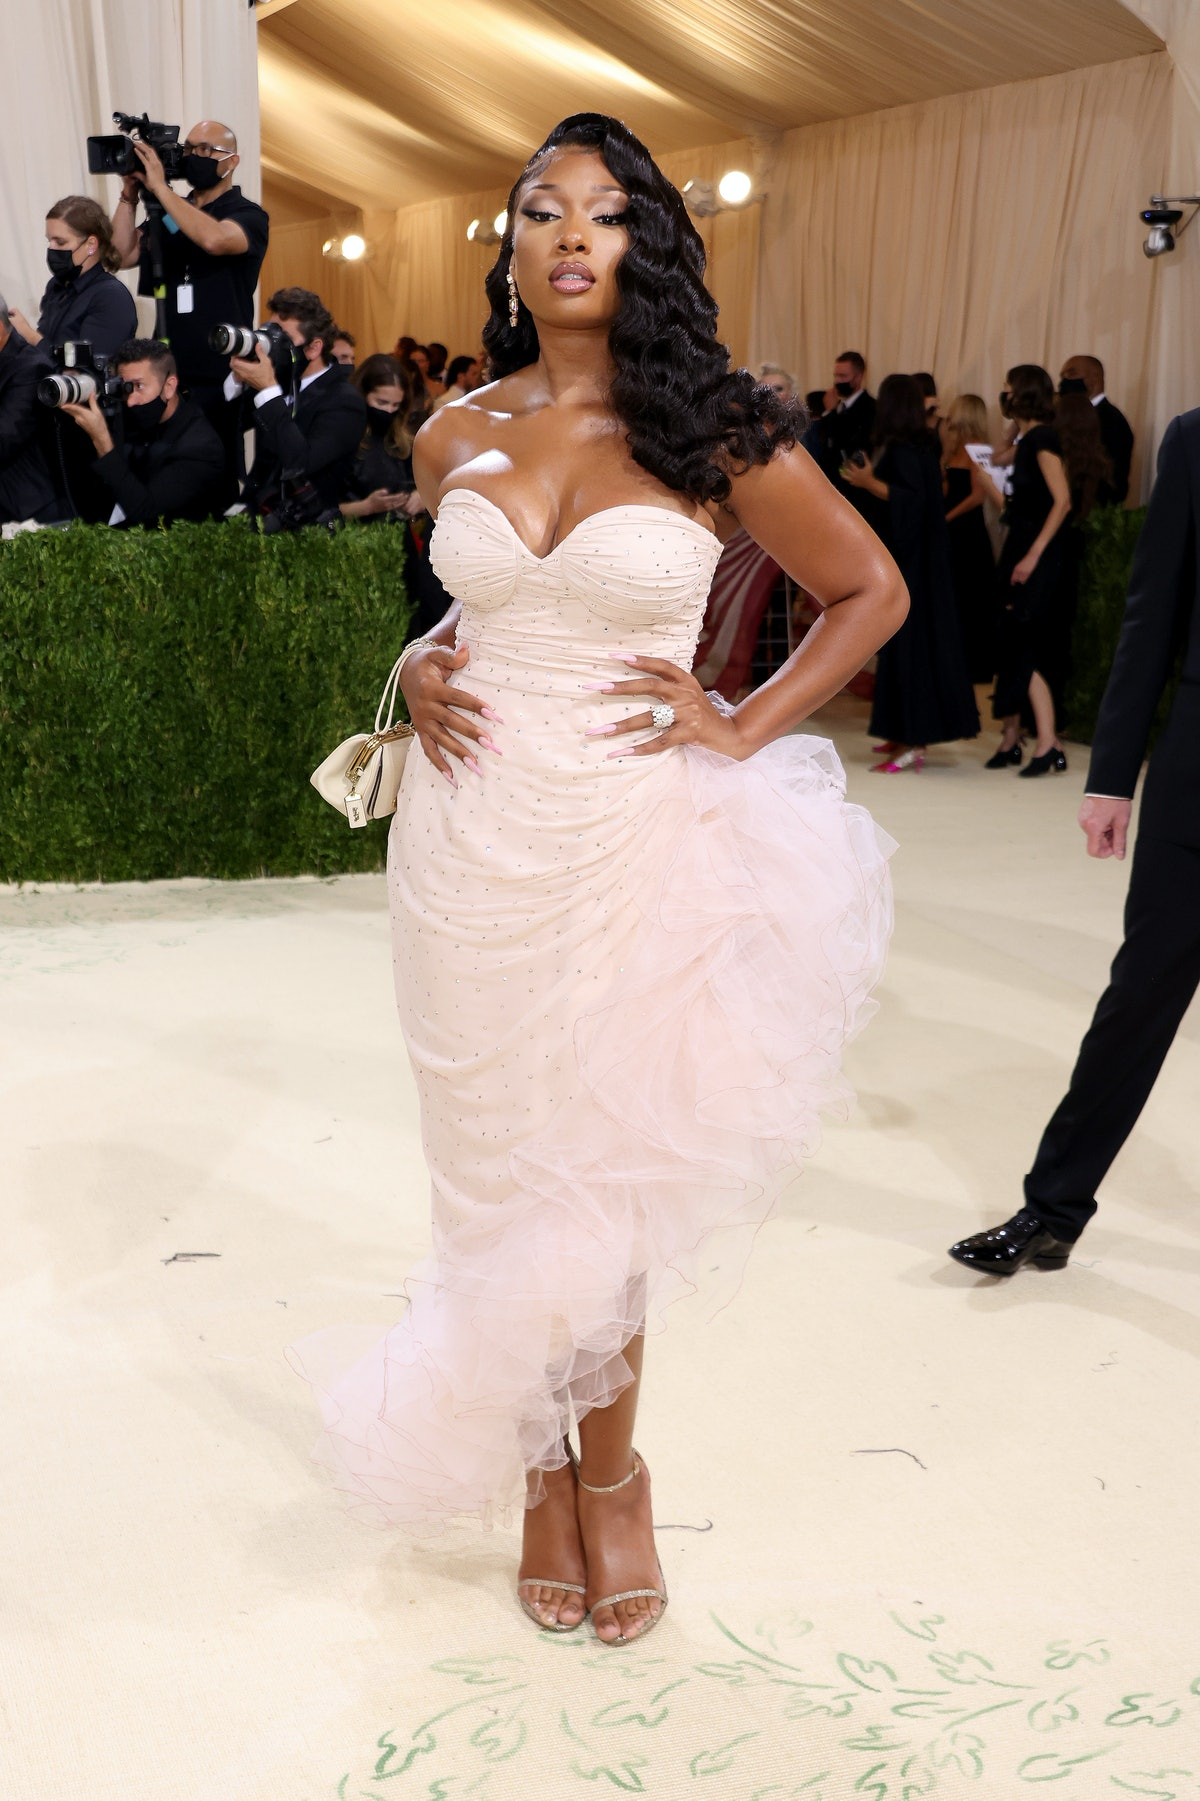 Megan Thee Stallion attends The 2021 Met Gala Celebrating In America: A Lexicon Of Fashion at Metrop...